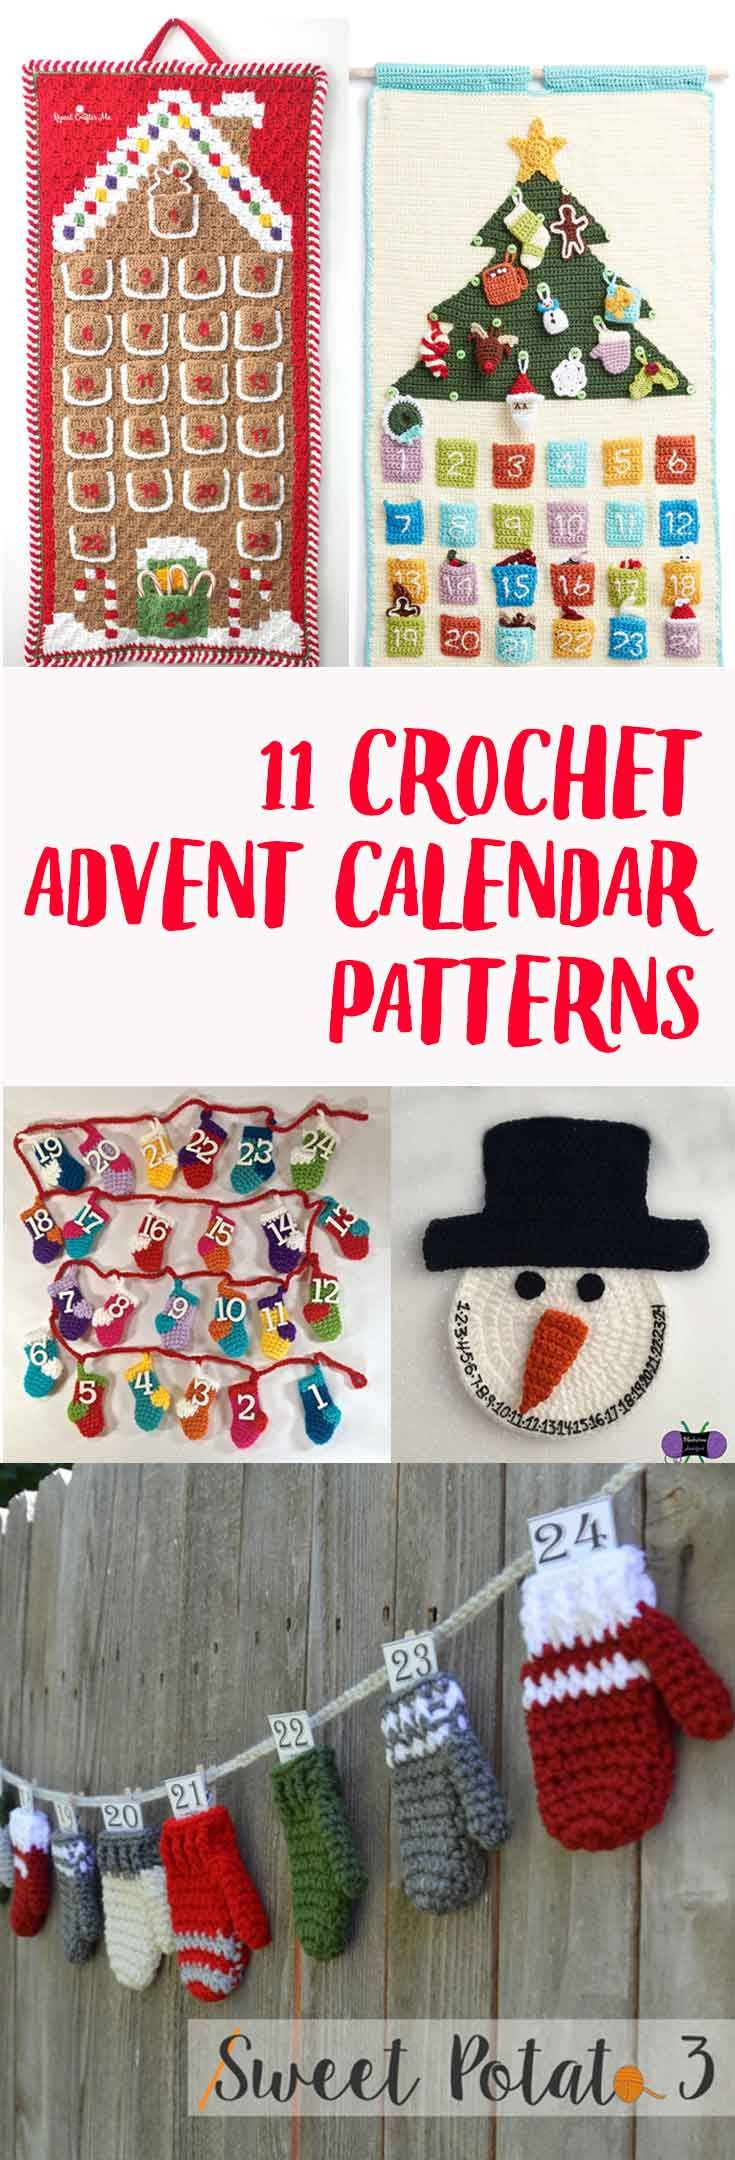 There are a lot of crochet advent calendar patterns out there. I picked the best 11 patterns to help you spend less time searching for patterns and more time crocheting.